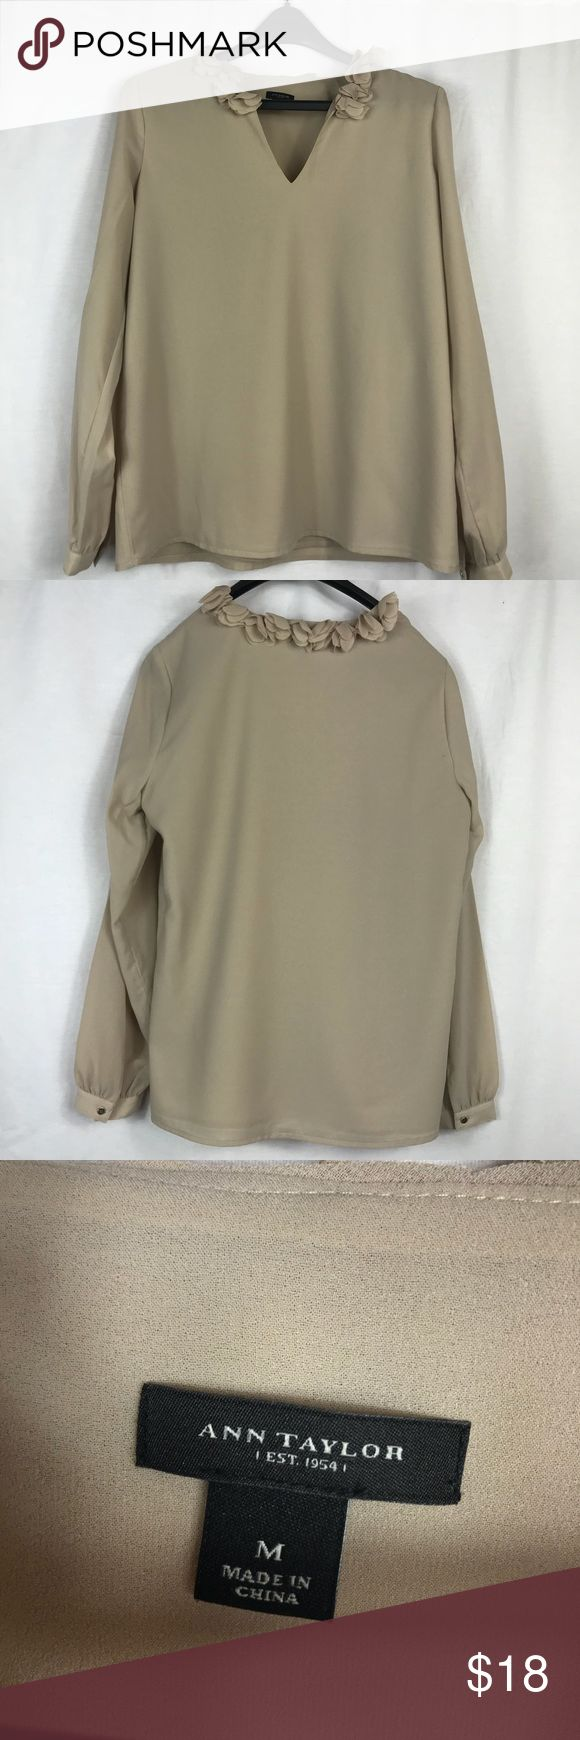 Ann Taylor Embellished Beige Long Sleeve SZ M Ann Taylor Embellished Beige Long Sleeve SZ M. Beautiful neutral long sleeve top with floral embellishments around the collar. V neck. There is a water spot and dark spot near the V-neck that will probably come out with cleaning. See pics for measurements or let me know if I can help. Offers are always welcome!! Ann Taylor Tops Blouses